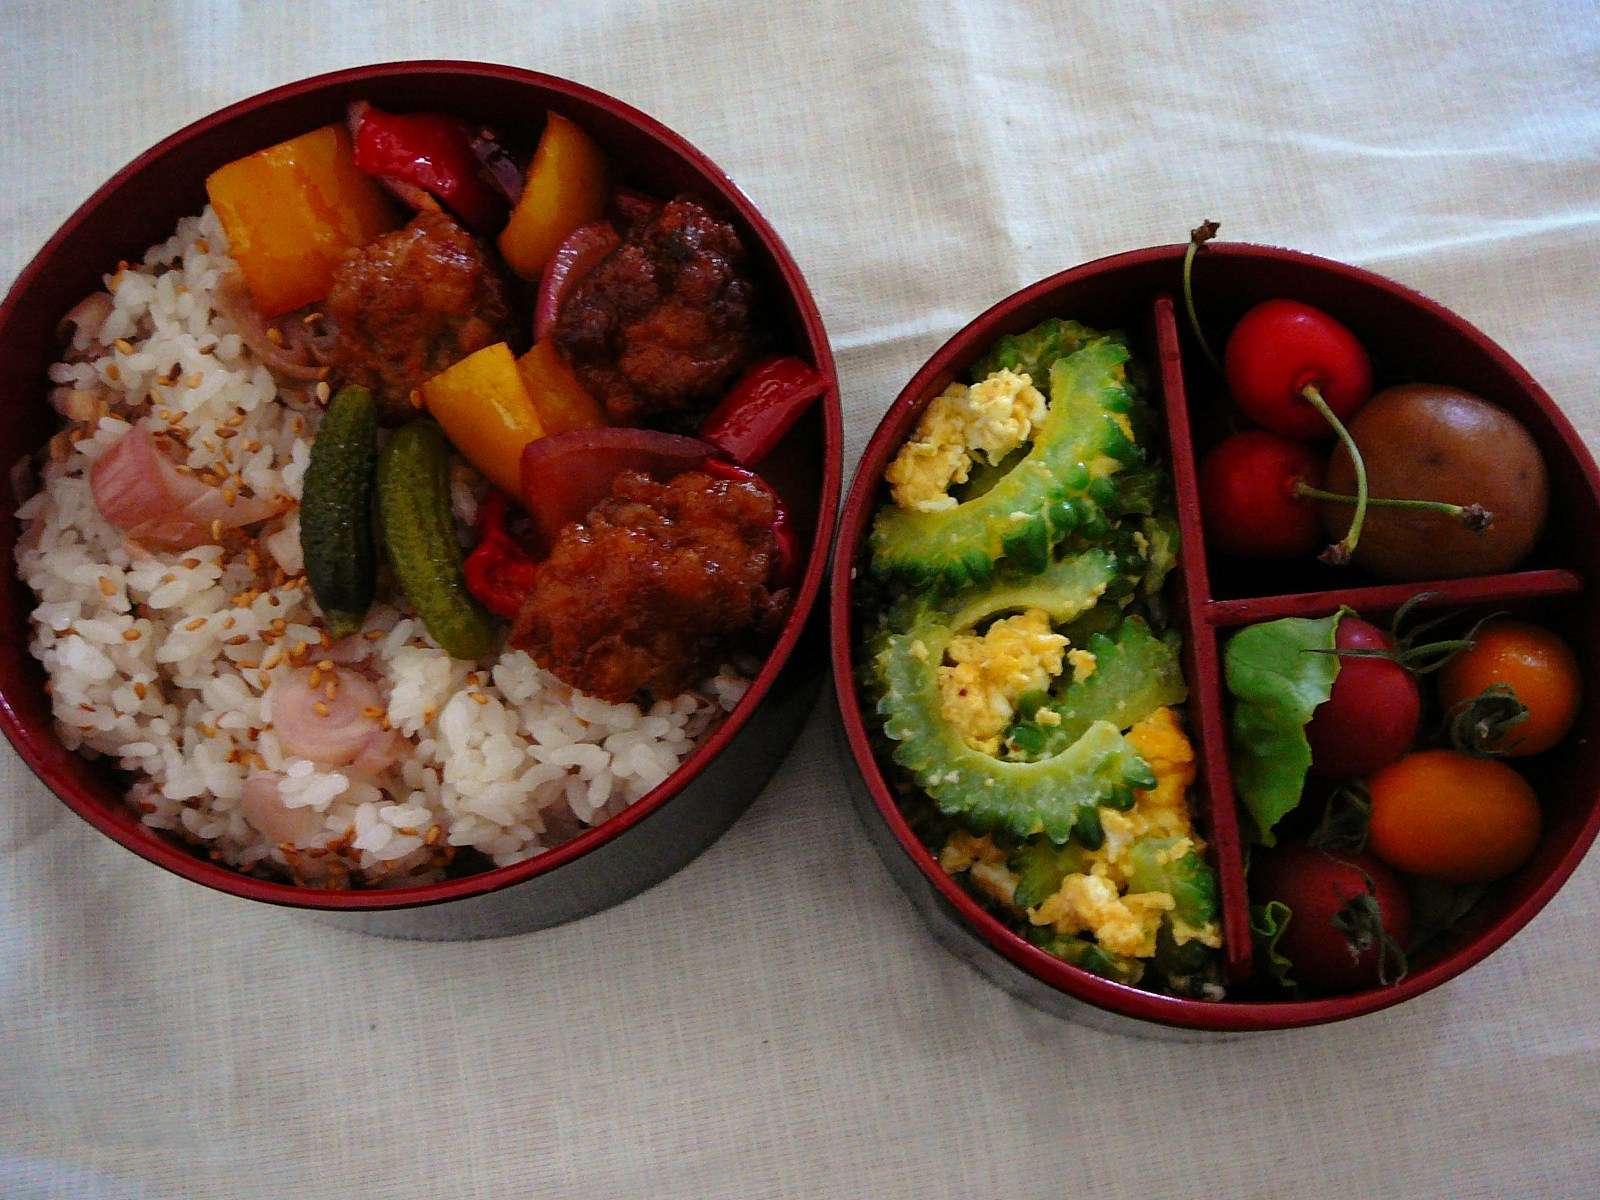 Traditional Japanese Bento Box